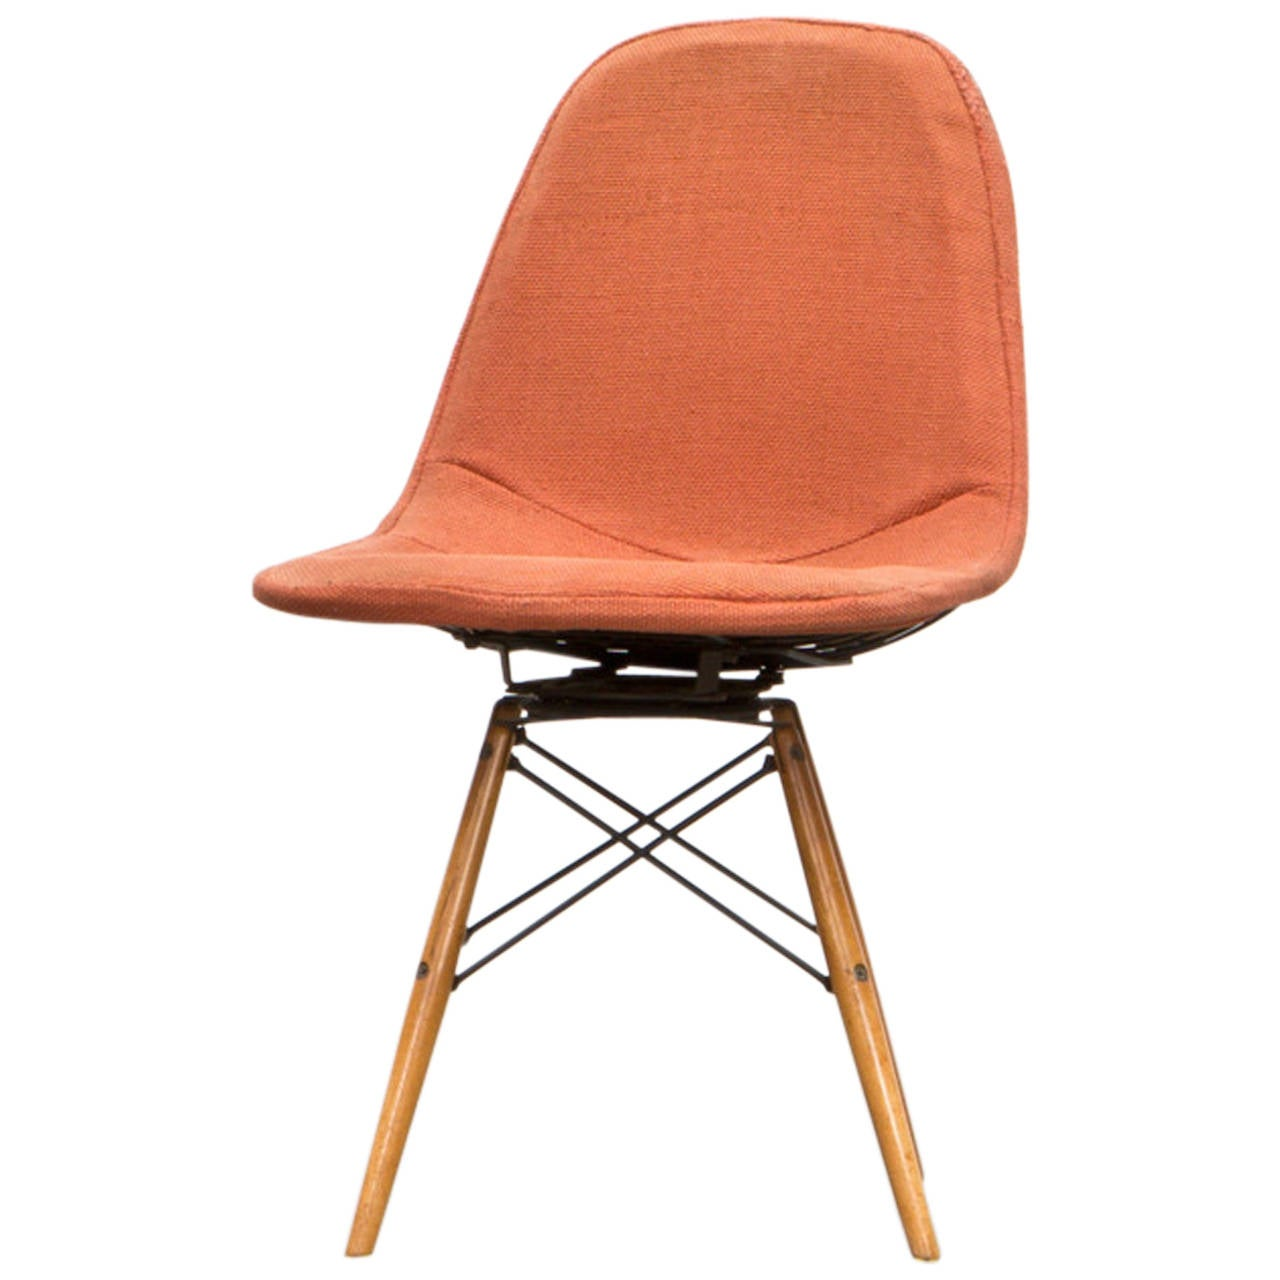 charles and ray eames swivel side chair for sale at 1stdibs. Black Bedroom Furniture Sets. Home Design Ideas